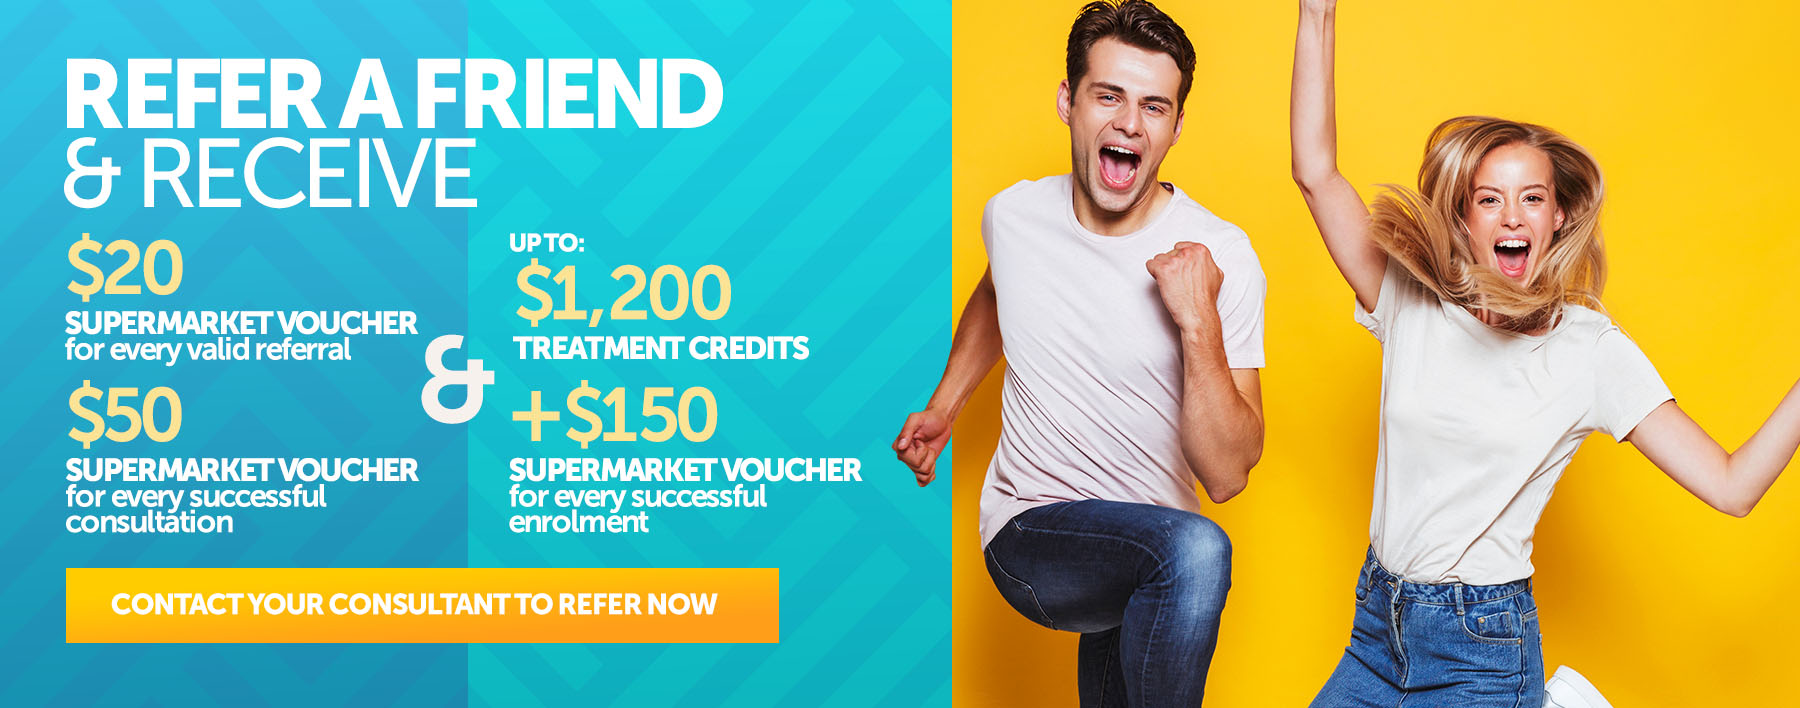 Refer a friend and receive vouchers!